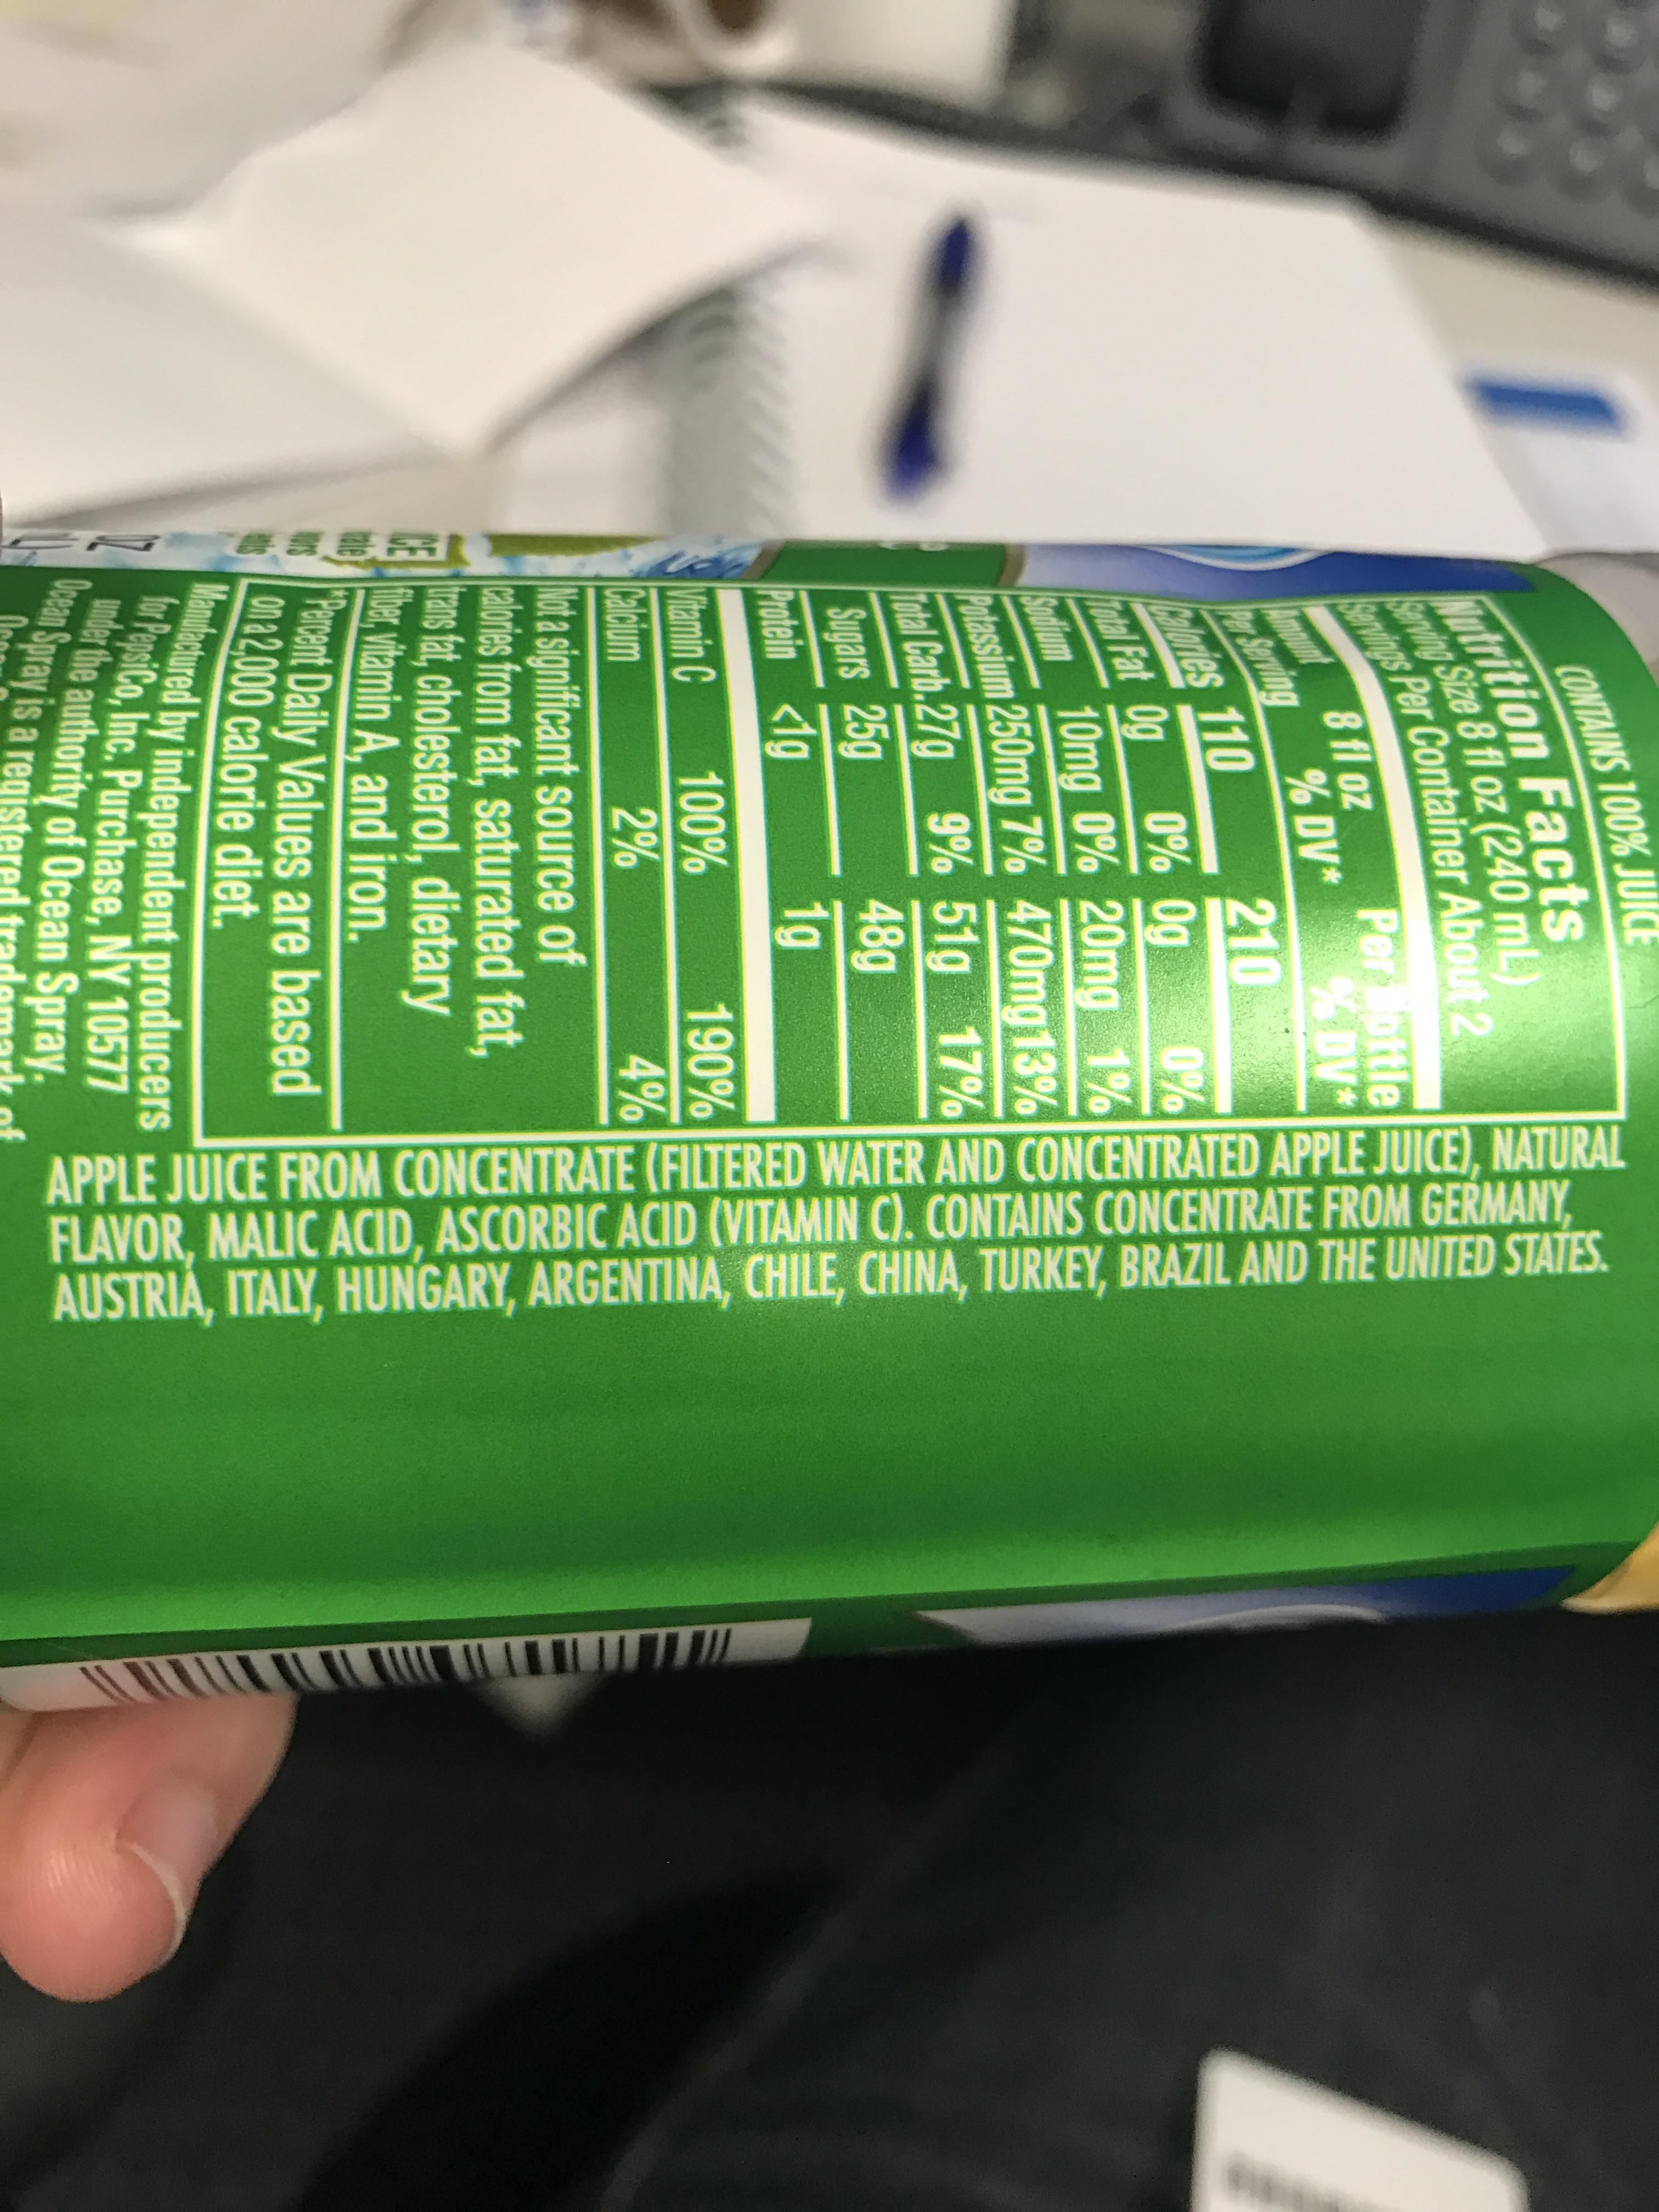 This one bottle of apple juice contains concentrate from 10 different countries.